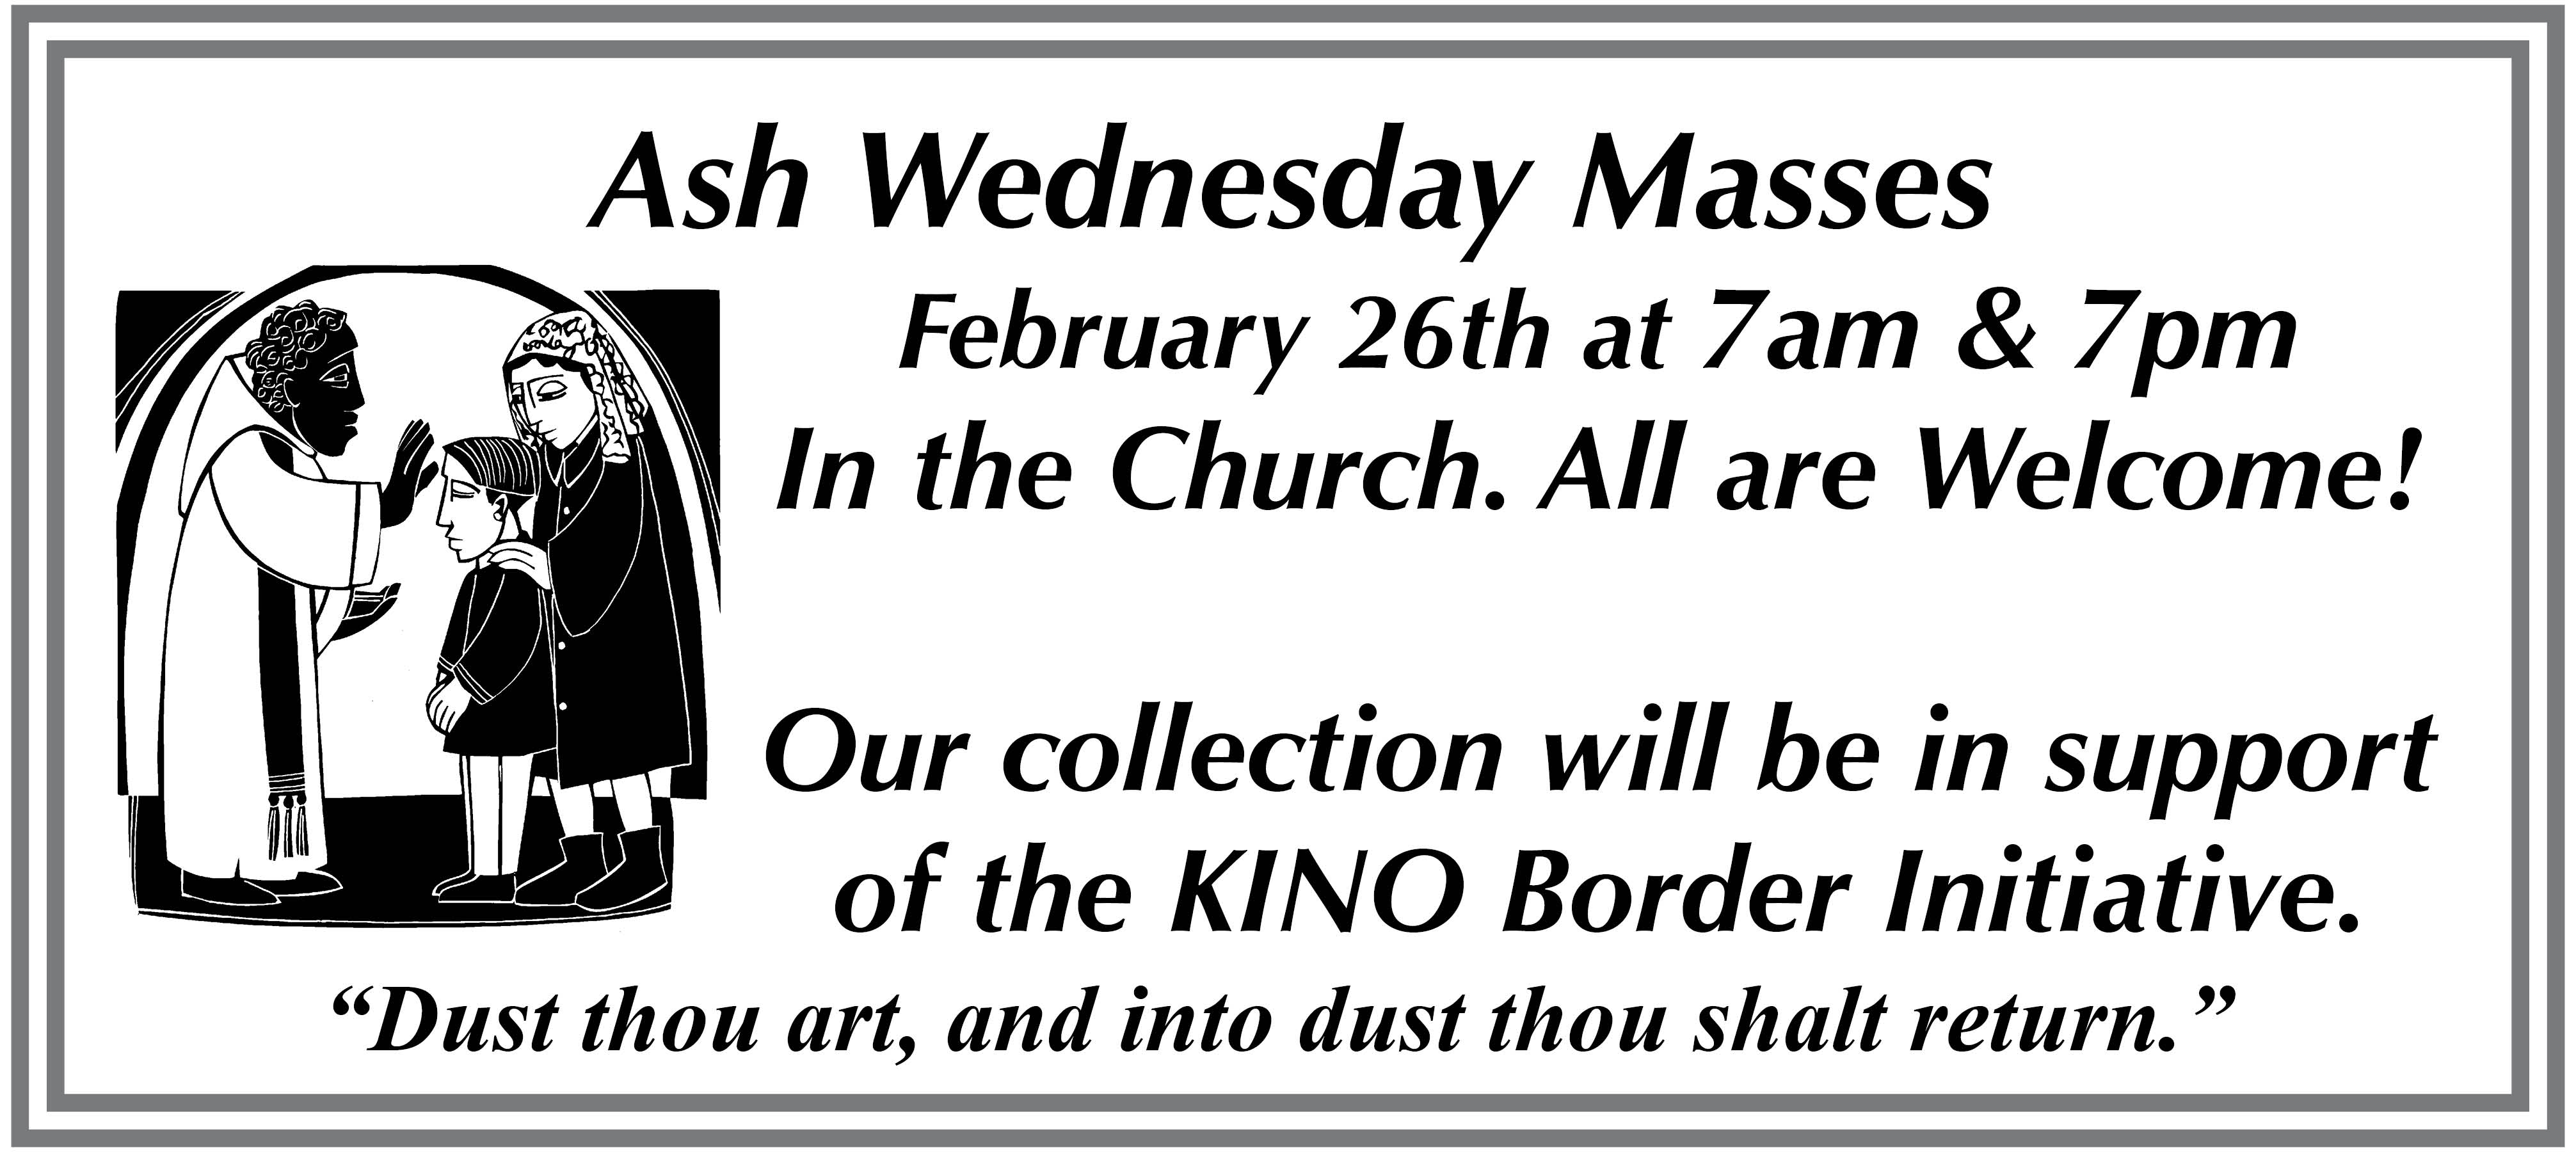 Ash Wednesday Schedule 2020